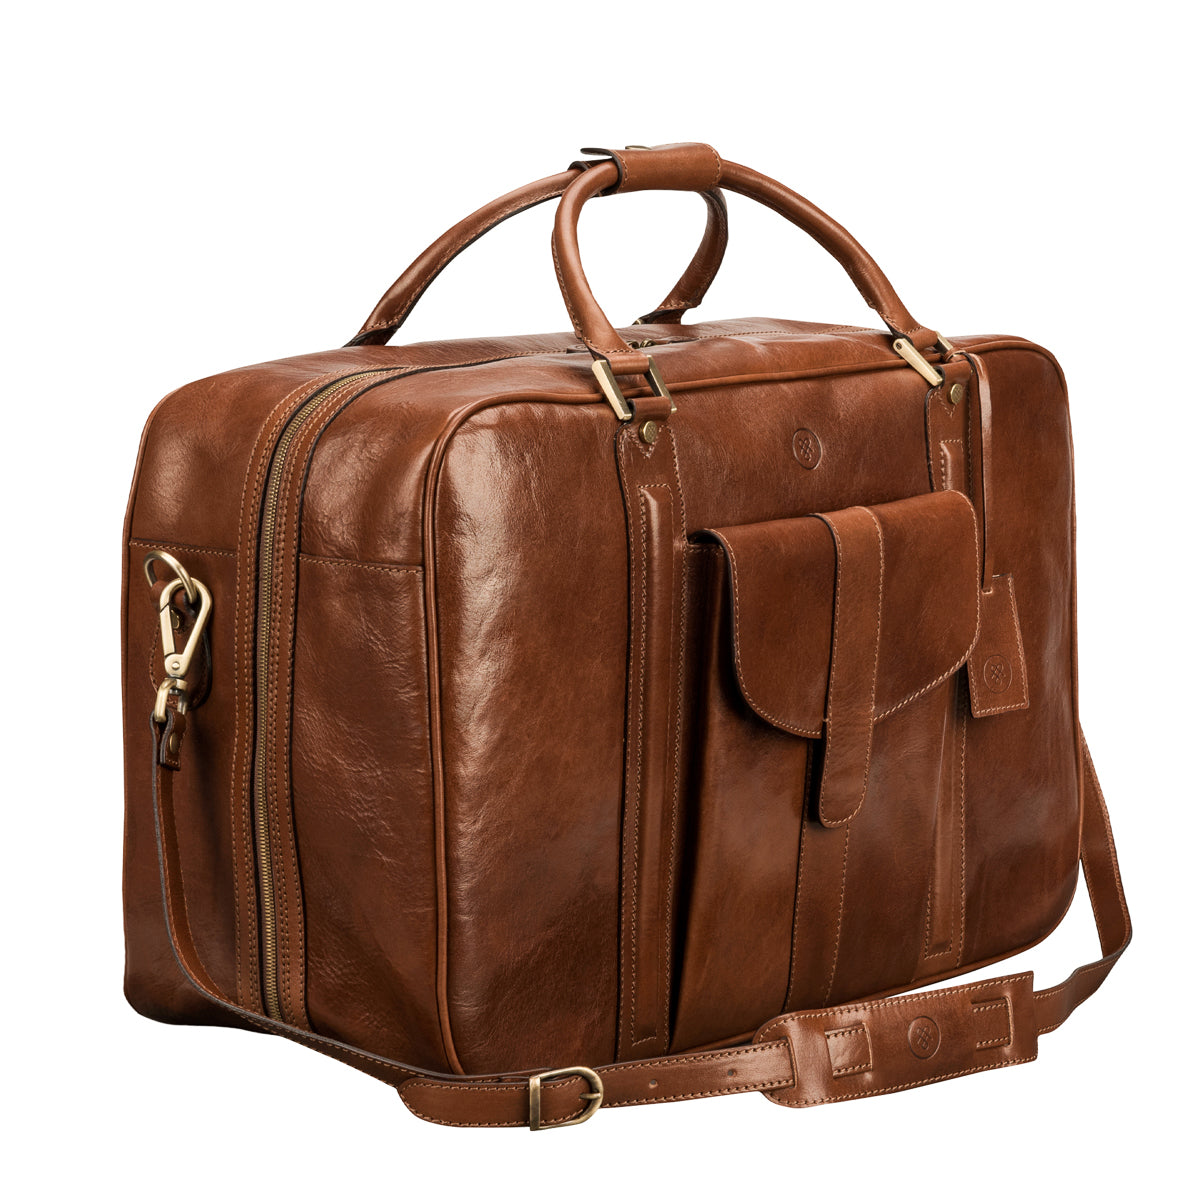 Image 2 of the 'Maurizio' Chestnut Italian Veg-Tanned Leather Suitcase